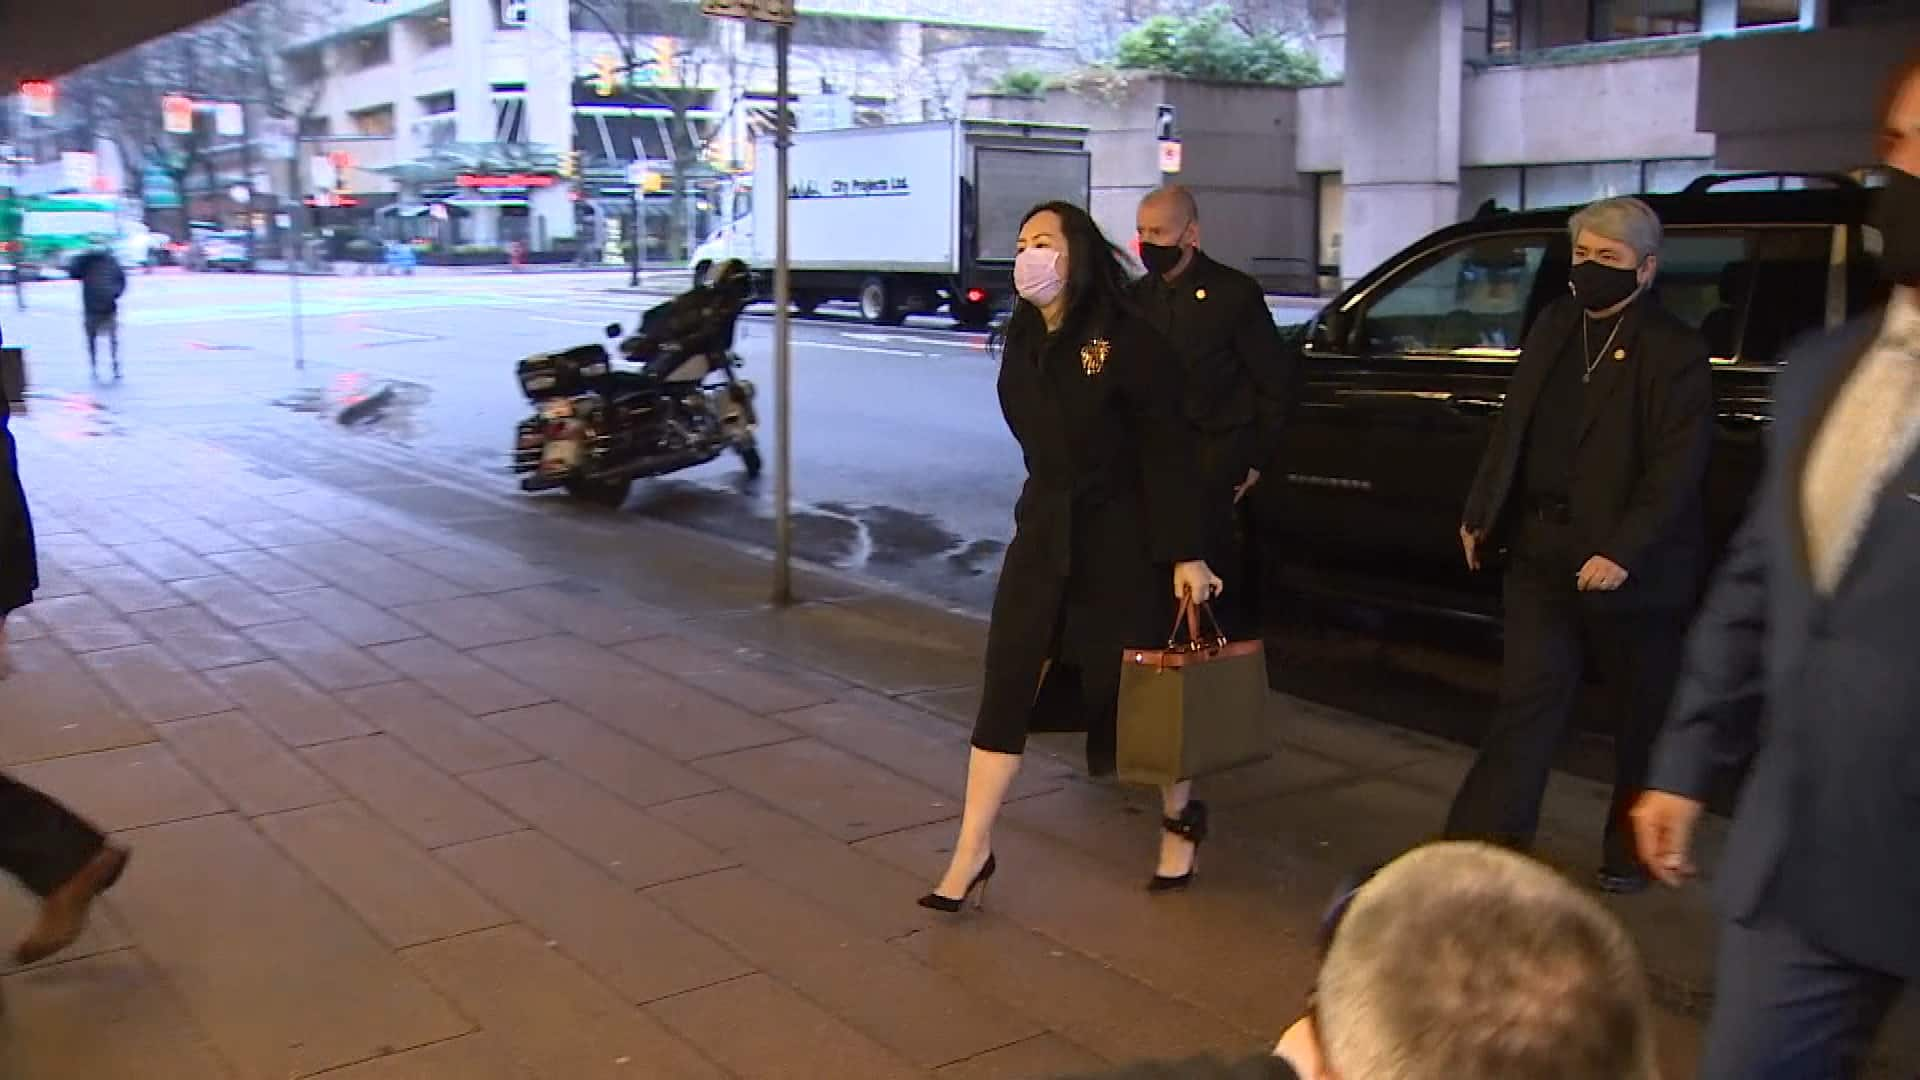 Meng Wanzhou claims security detail placing her at risk of contracting COVID-19